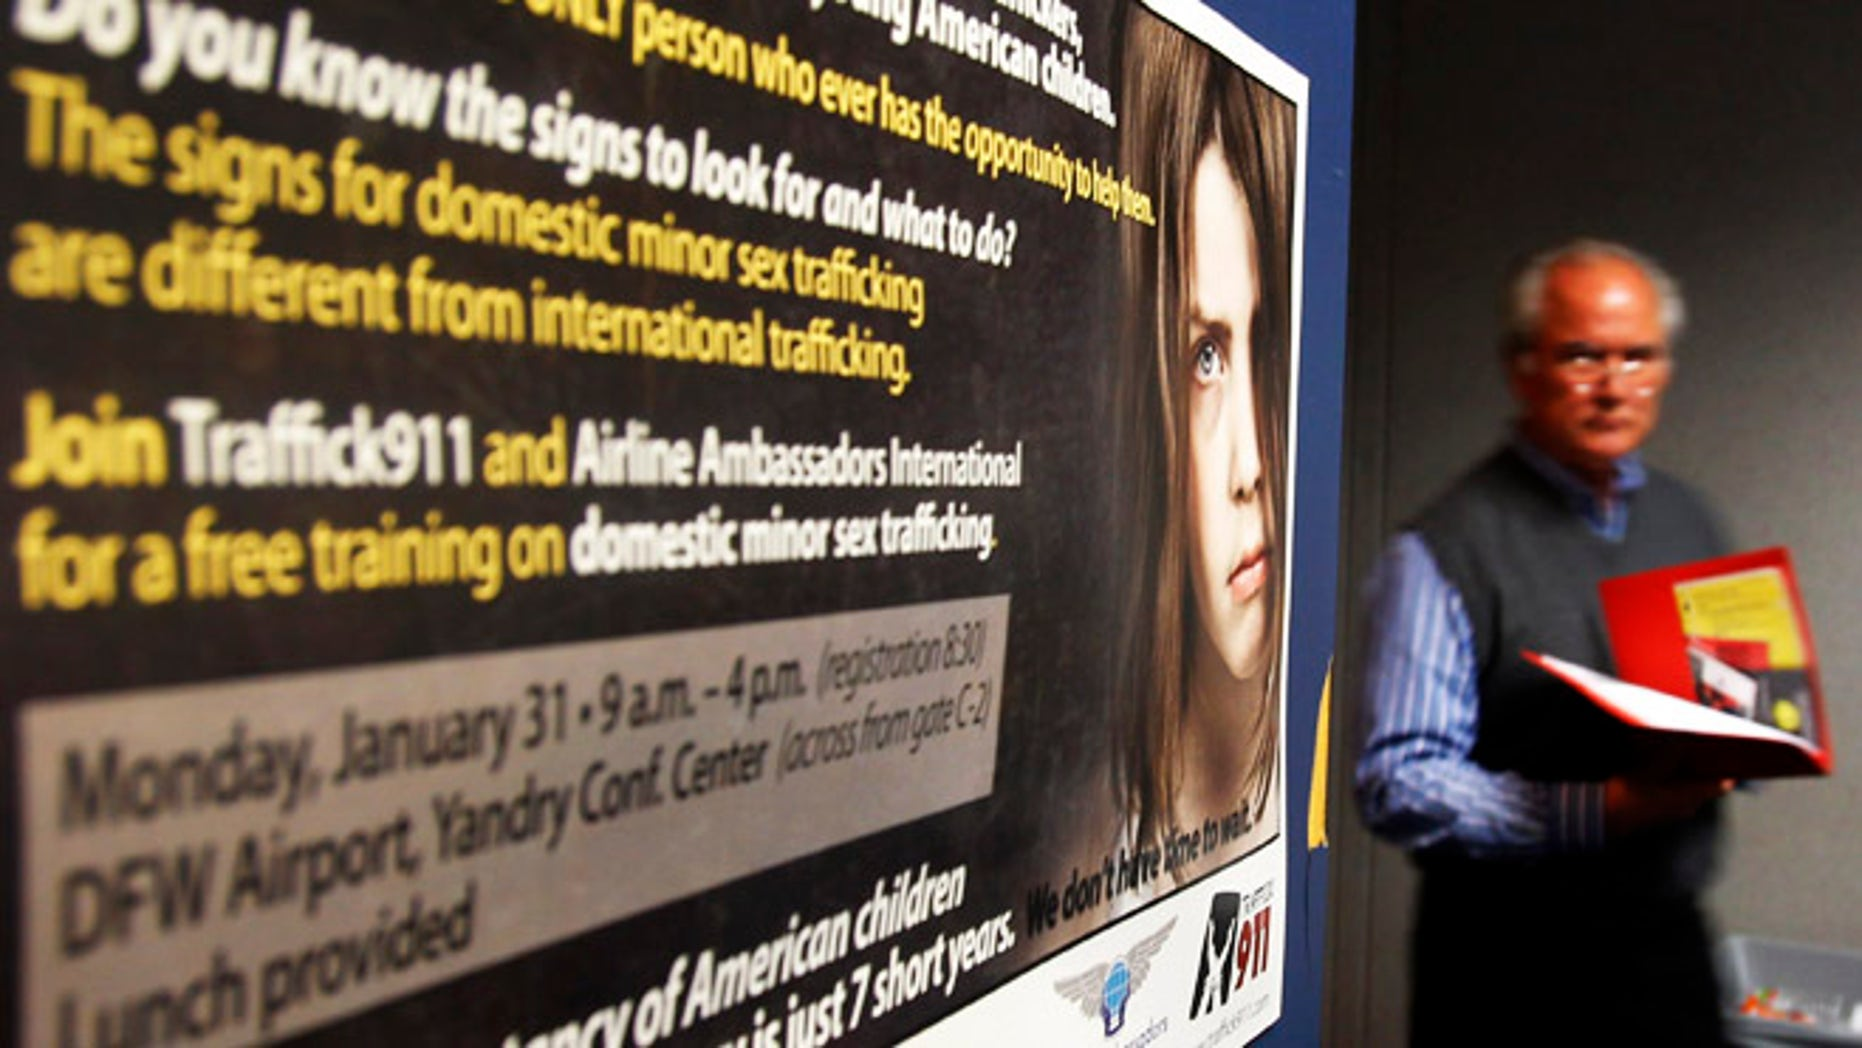 A participant in a training program walks past a poster drawing attention to sex-trafficking at Dallas Fort Worth International Airport in Dallas, Texas, January 31, 2011 ahead of NFL football's Super Bowl XLV to be played February 6.  Pimps will traffic thousands of under-age prostitutes to Texas for Sunday's Super Bowl, hoping to do business with men arriving for the big game with money to burn, child rights advocates said. REUTERS/Brian Snyder (UNITED STATES - Tags: SPORT FOOTBALL CRIME LAW SOCIETY) - RTXXC3I